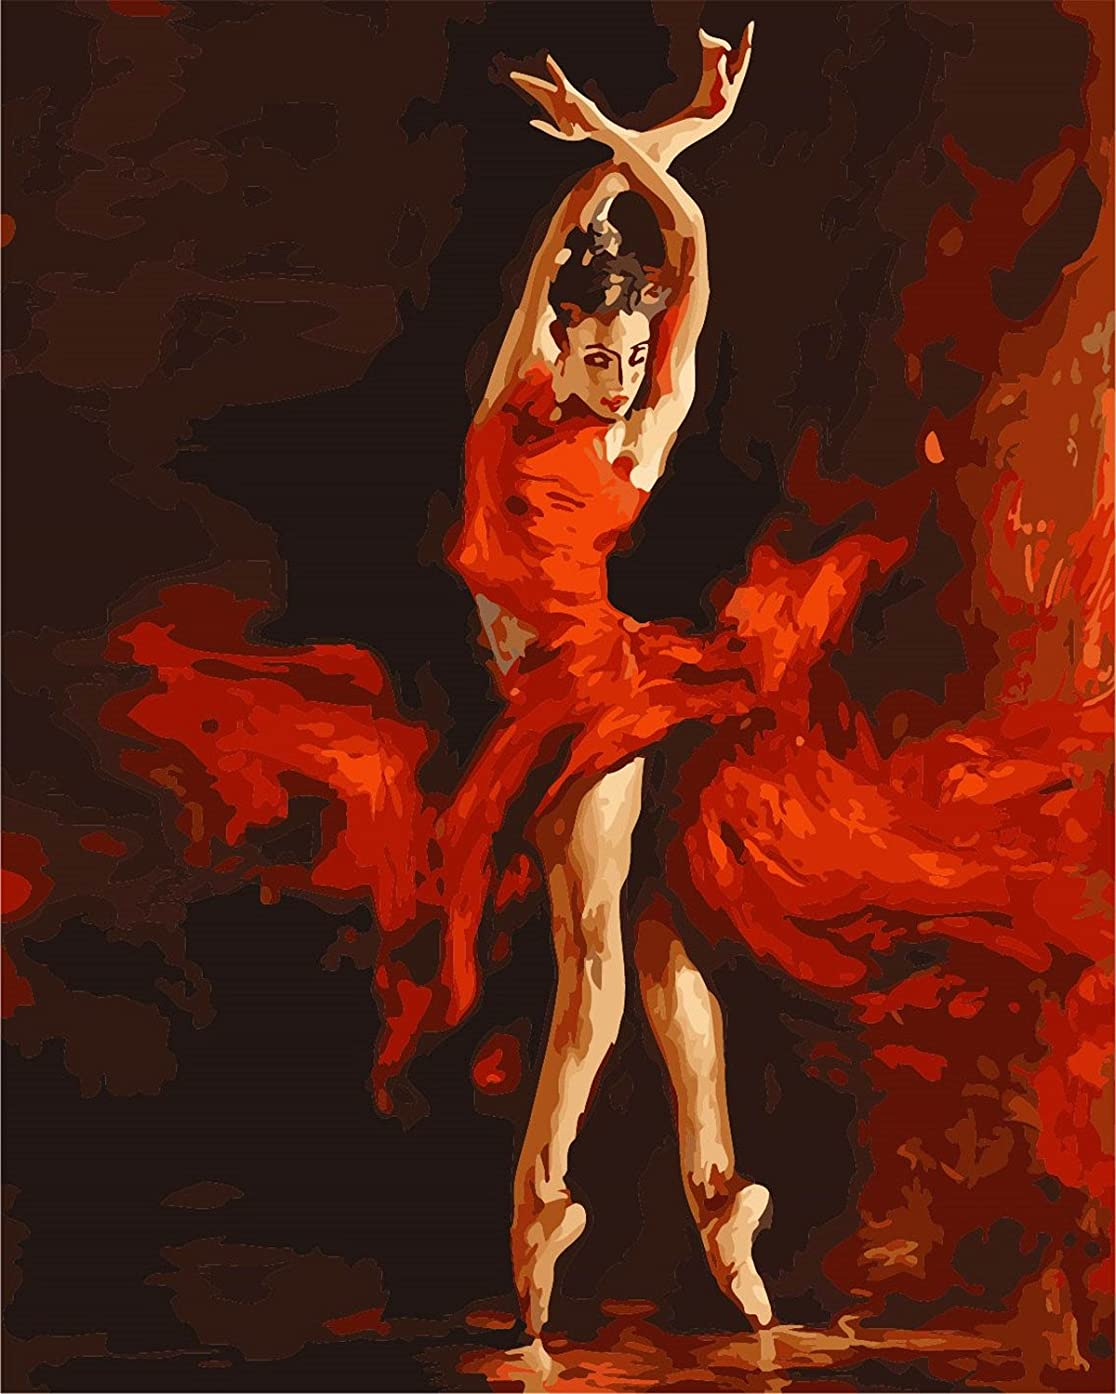 Sonby Frameless DIY Paint By Numbers Kits For Adult Kids Fire Red Ballet Dancer On Canvas Painting By Number For Home Wall Decor,Unmounted